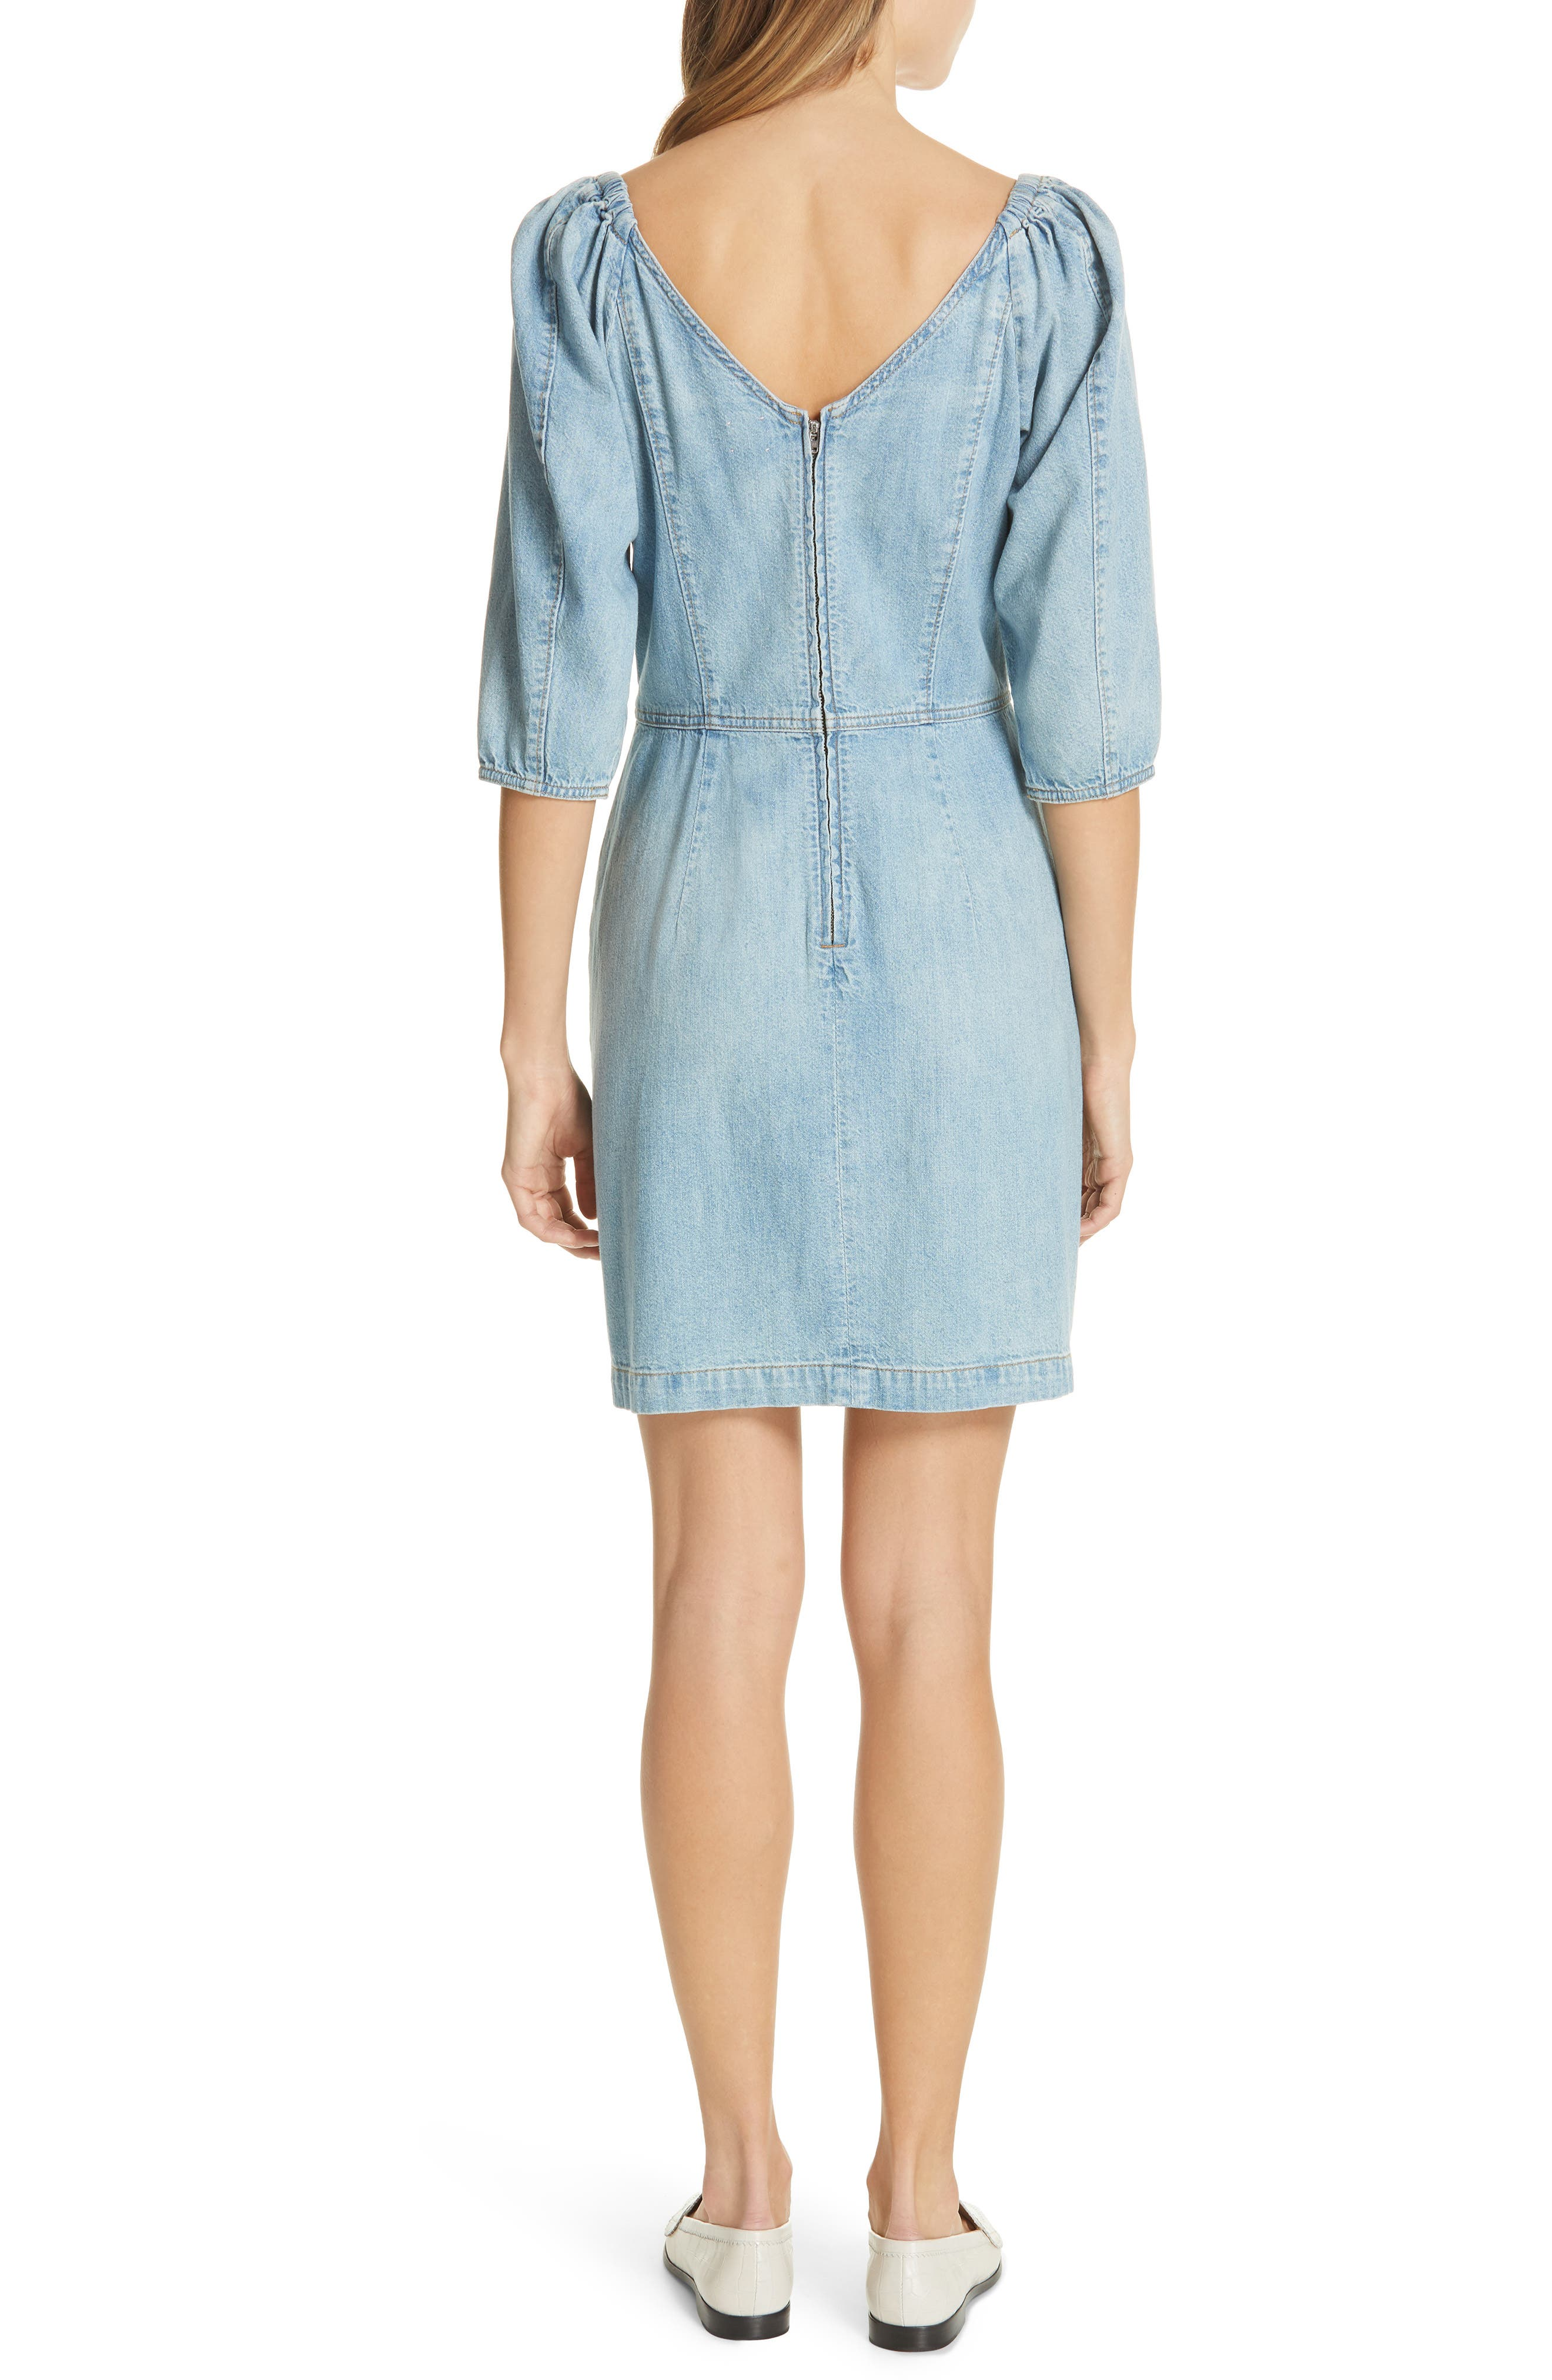 LA VIE REBECCA TAYLOR, Tie Neck Denim Dress, Alternate thumbnail 2, color, FORGET ME NOT WASH